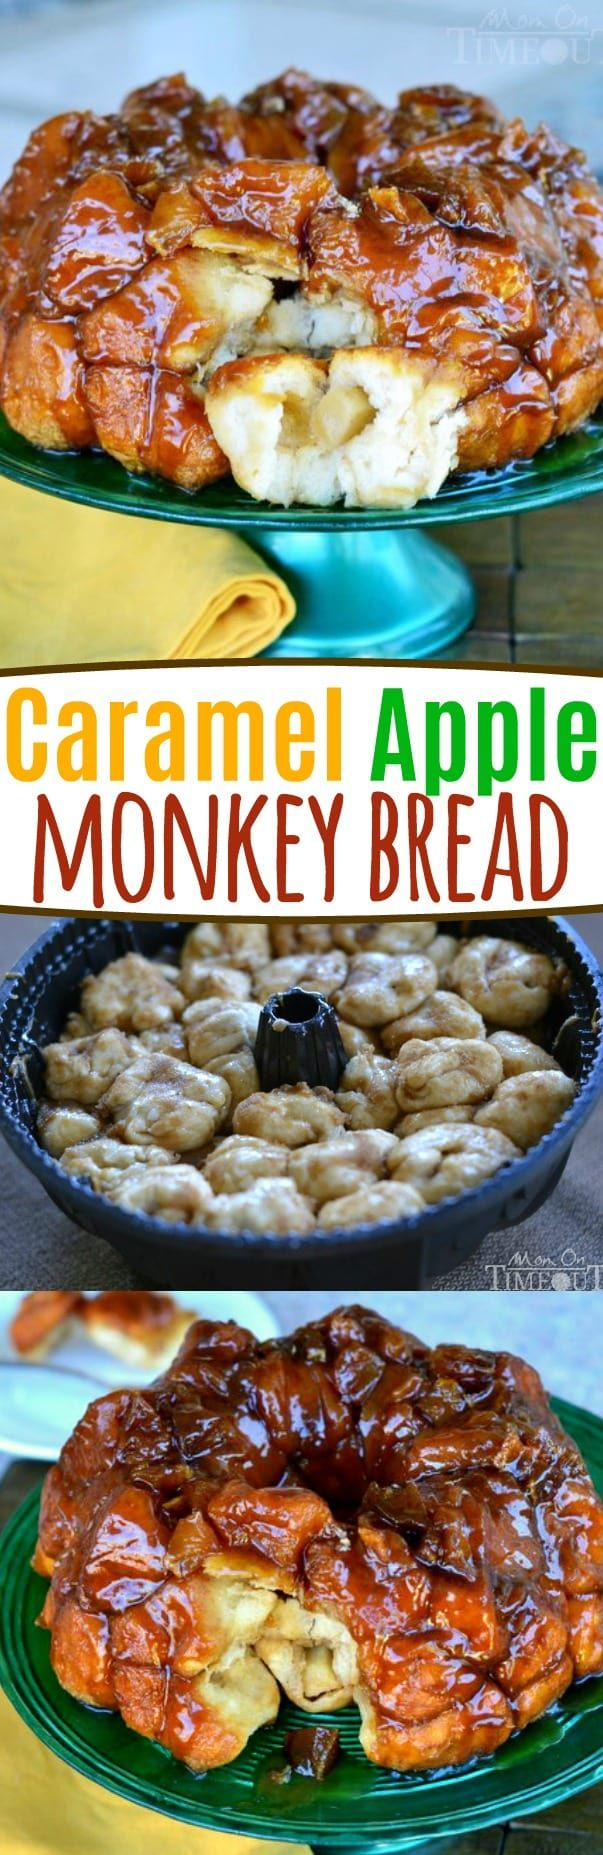 Caramel Apple Monkey Bread - if you love caramel apples, you're going to love this monkey bread! Oozing with caramel and fresh apples, it's the perfect way to start or end your day! Great for breakfast, brunch, dessert or anything in between! // Mom On Timeout